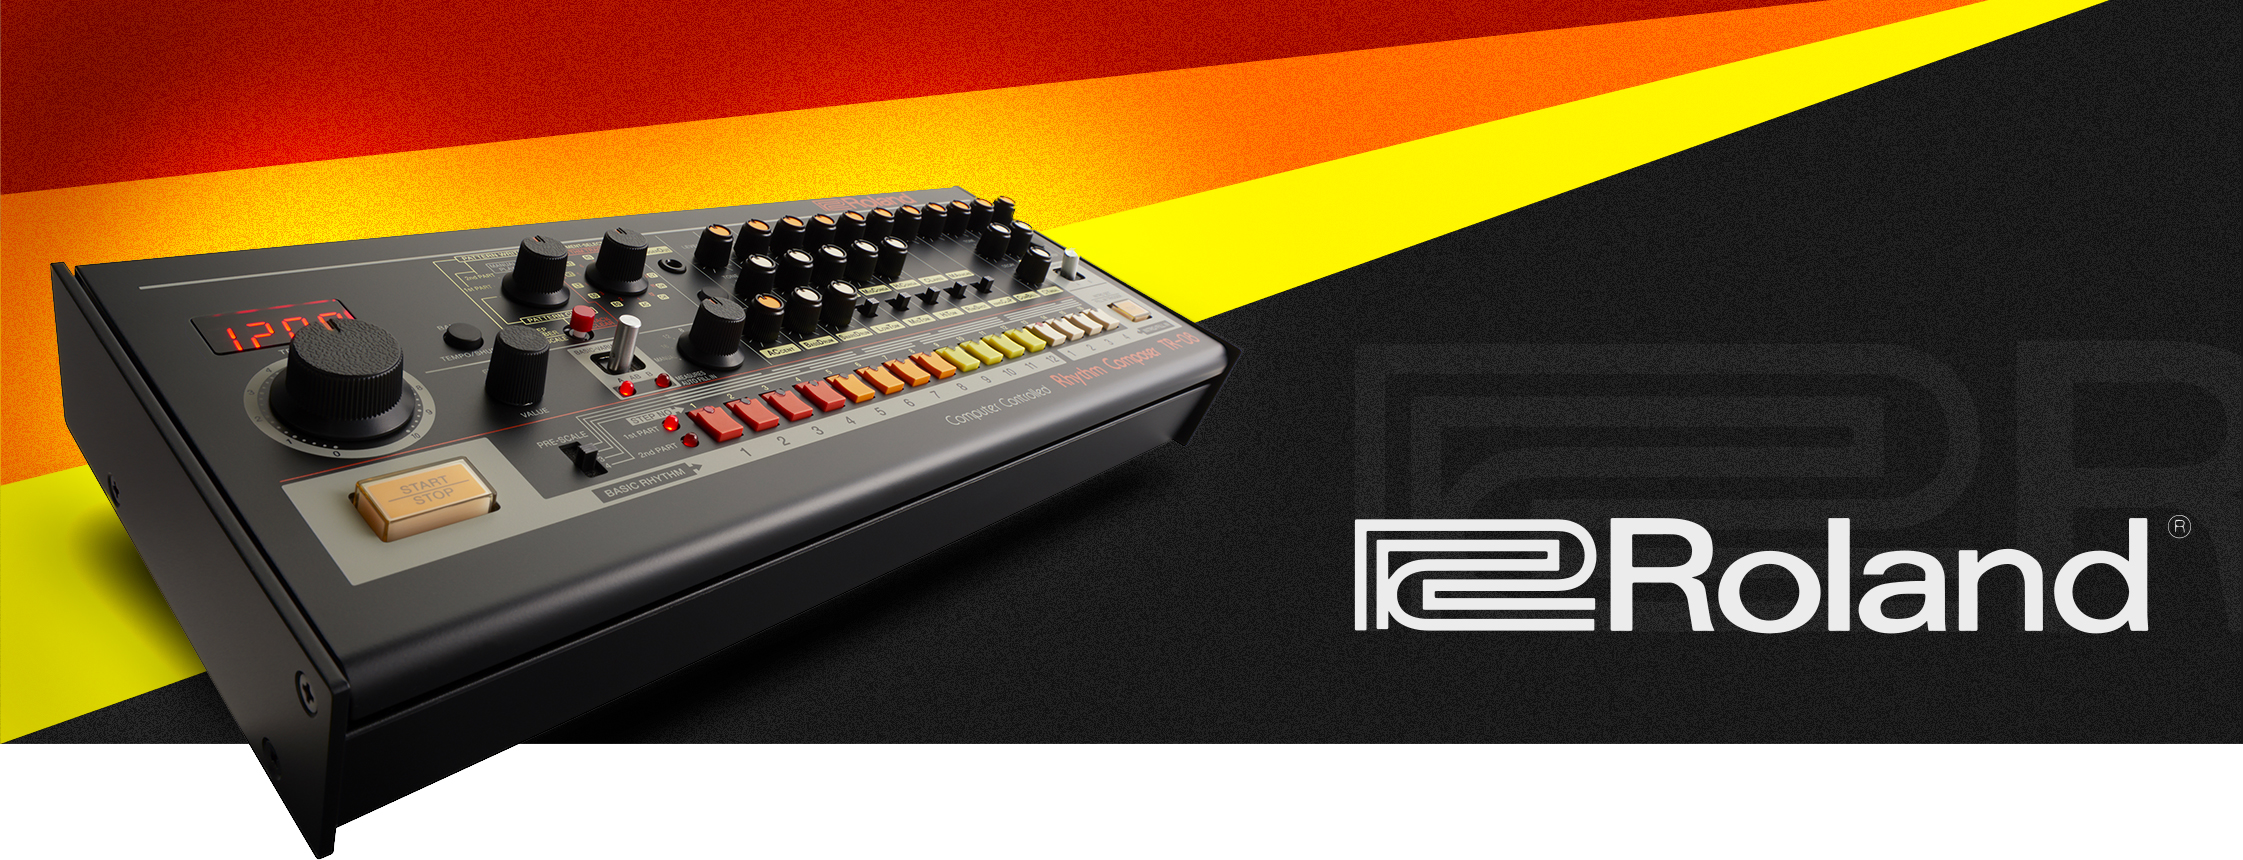 roland competition